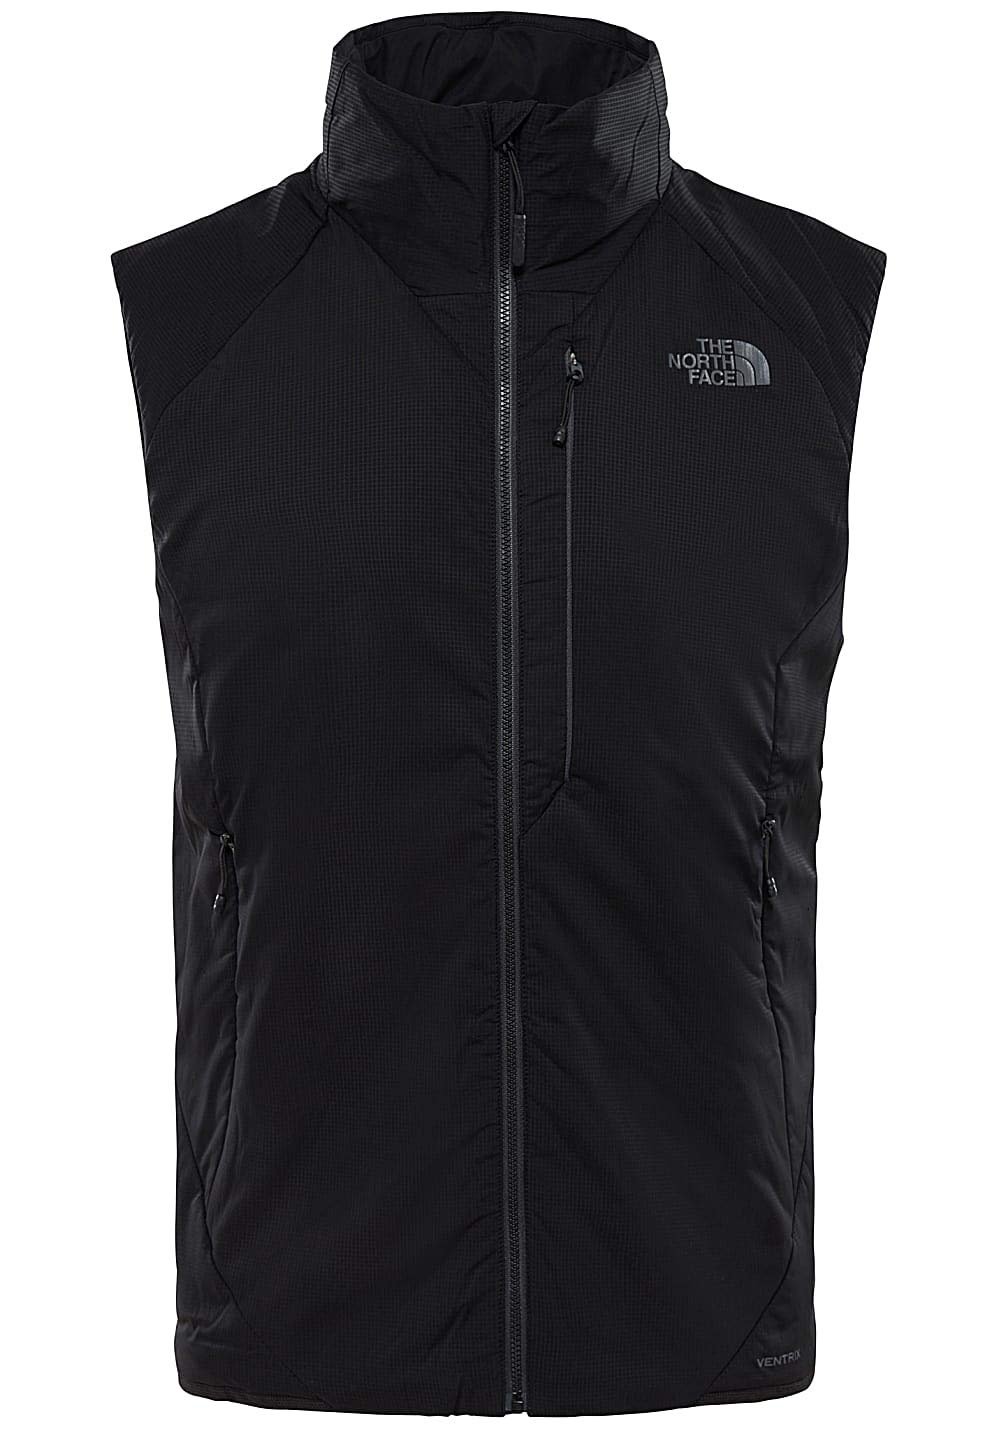 THE NORTH FACE Ventrix Vest